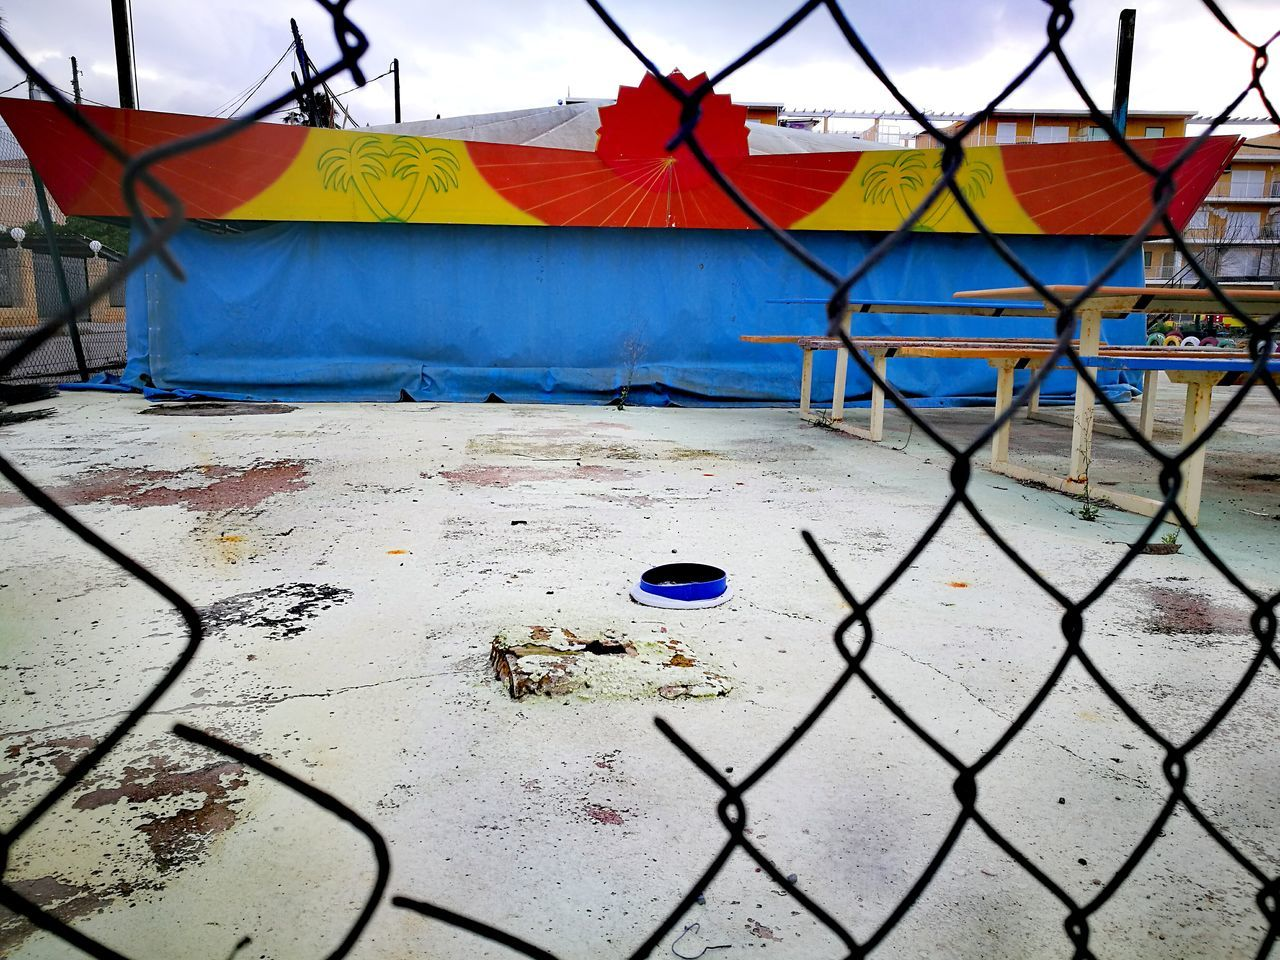 Built Structure Building Exterior Multi Colored Architecture No People Outdoors City Sky Day Traveling Home For The Holidays Hat On Pavement Cityscape Outdoor Abandoned Places Abandoned & Derelict Finding New Frontiers Street Photography City Chainlink Fence